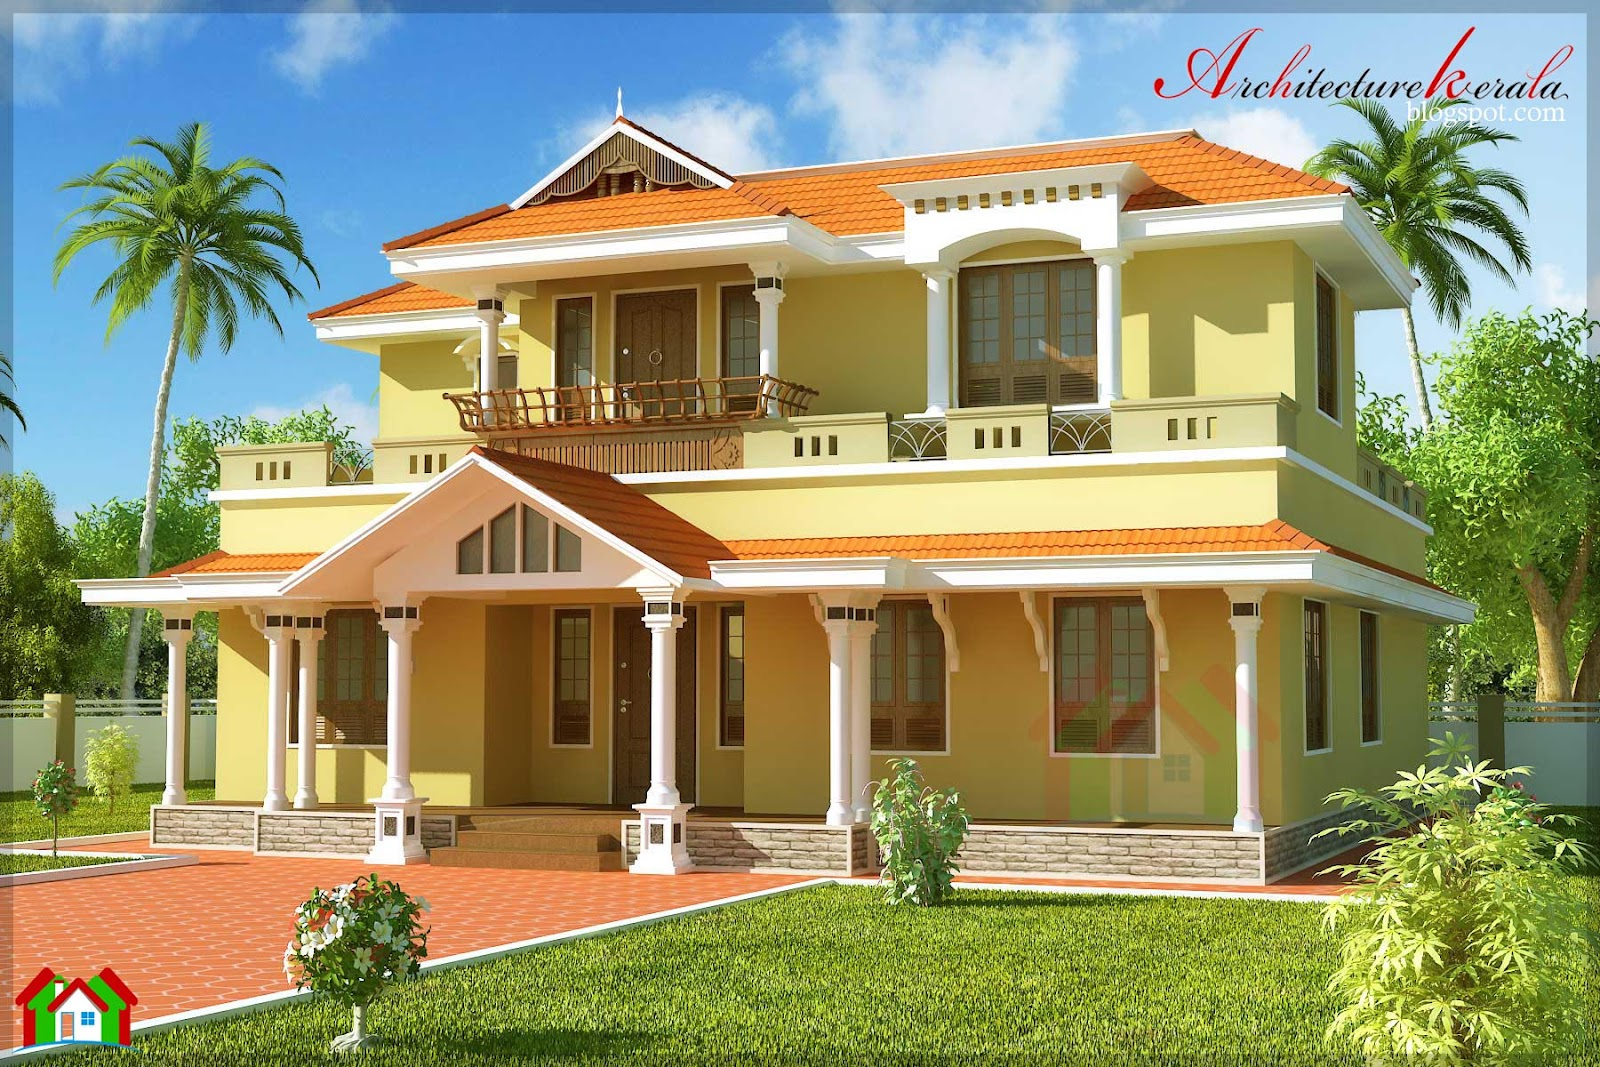 Architecture kerala 2500 square feet traditional style for Traditional house plans kerala style